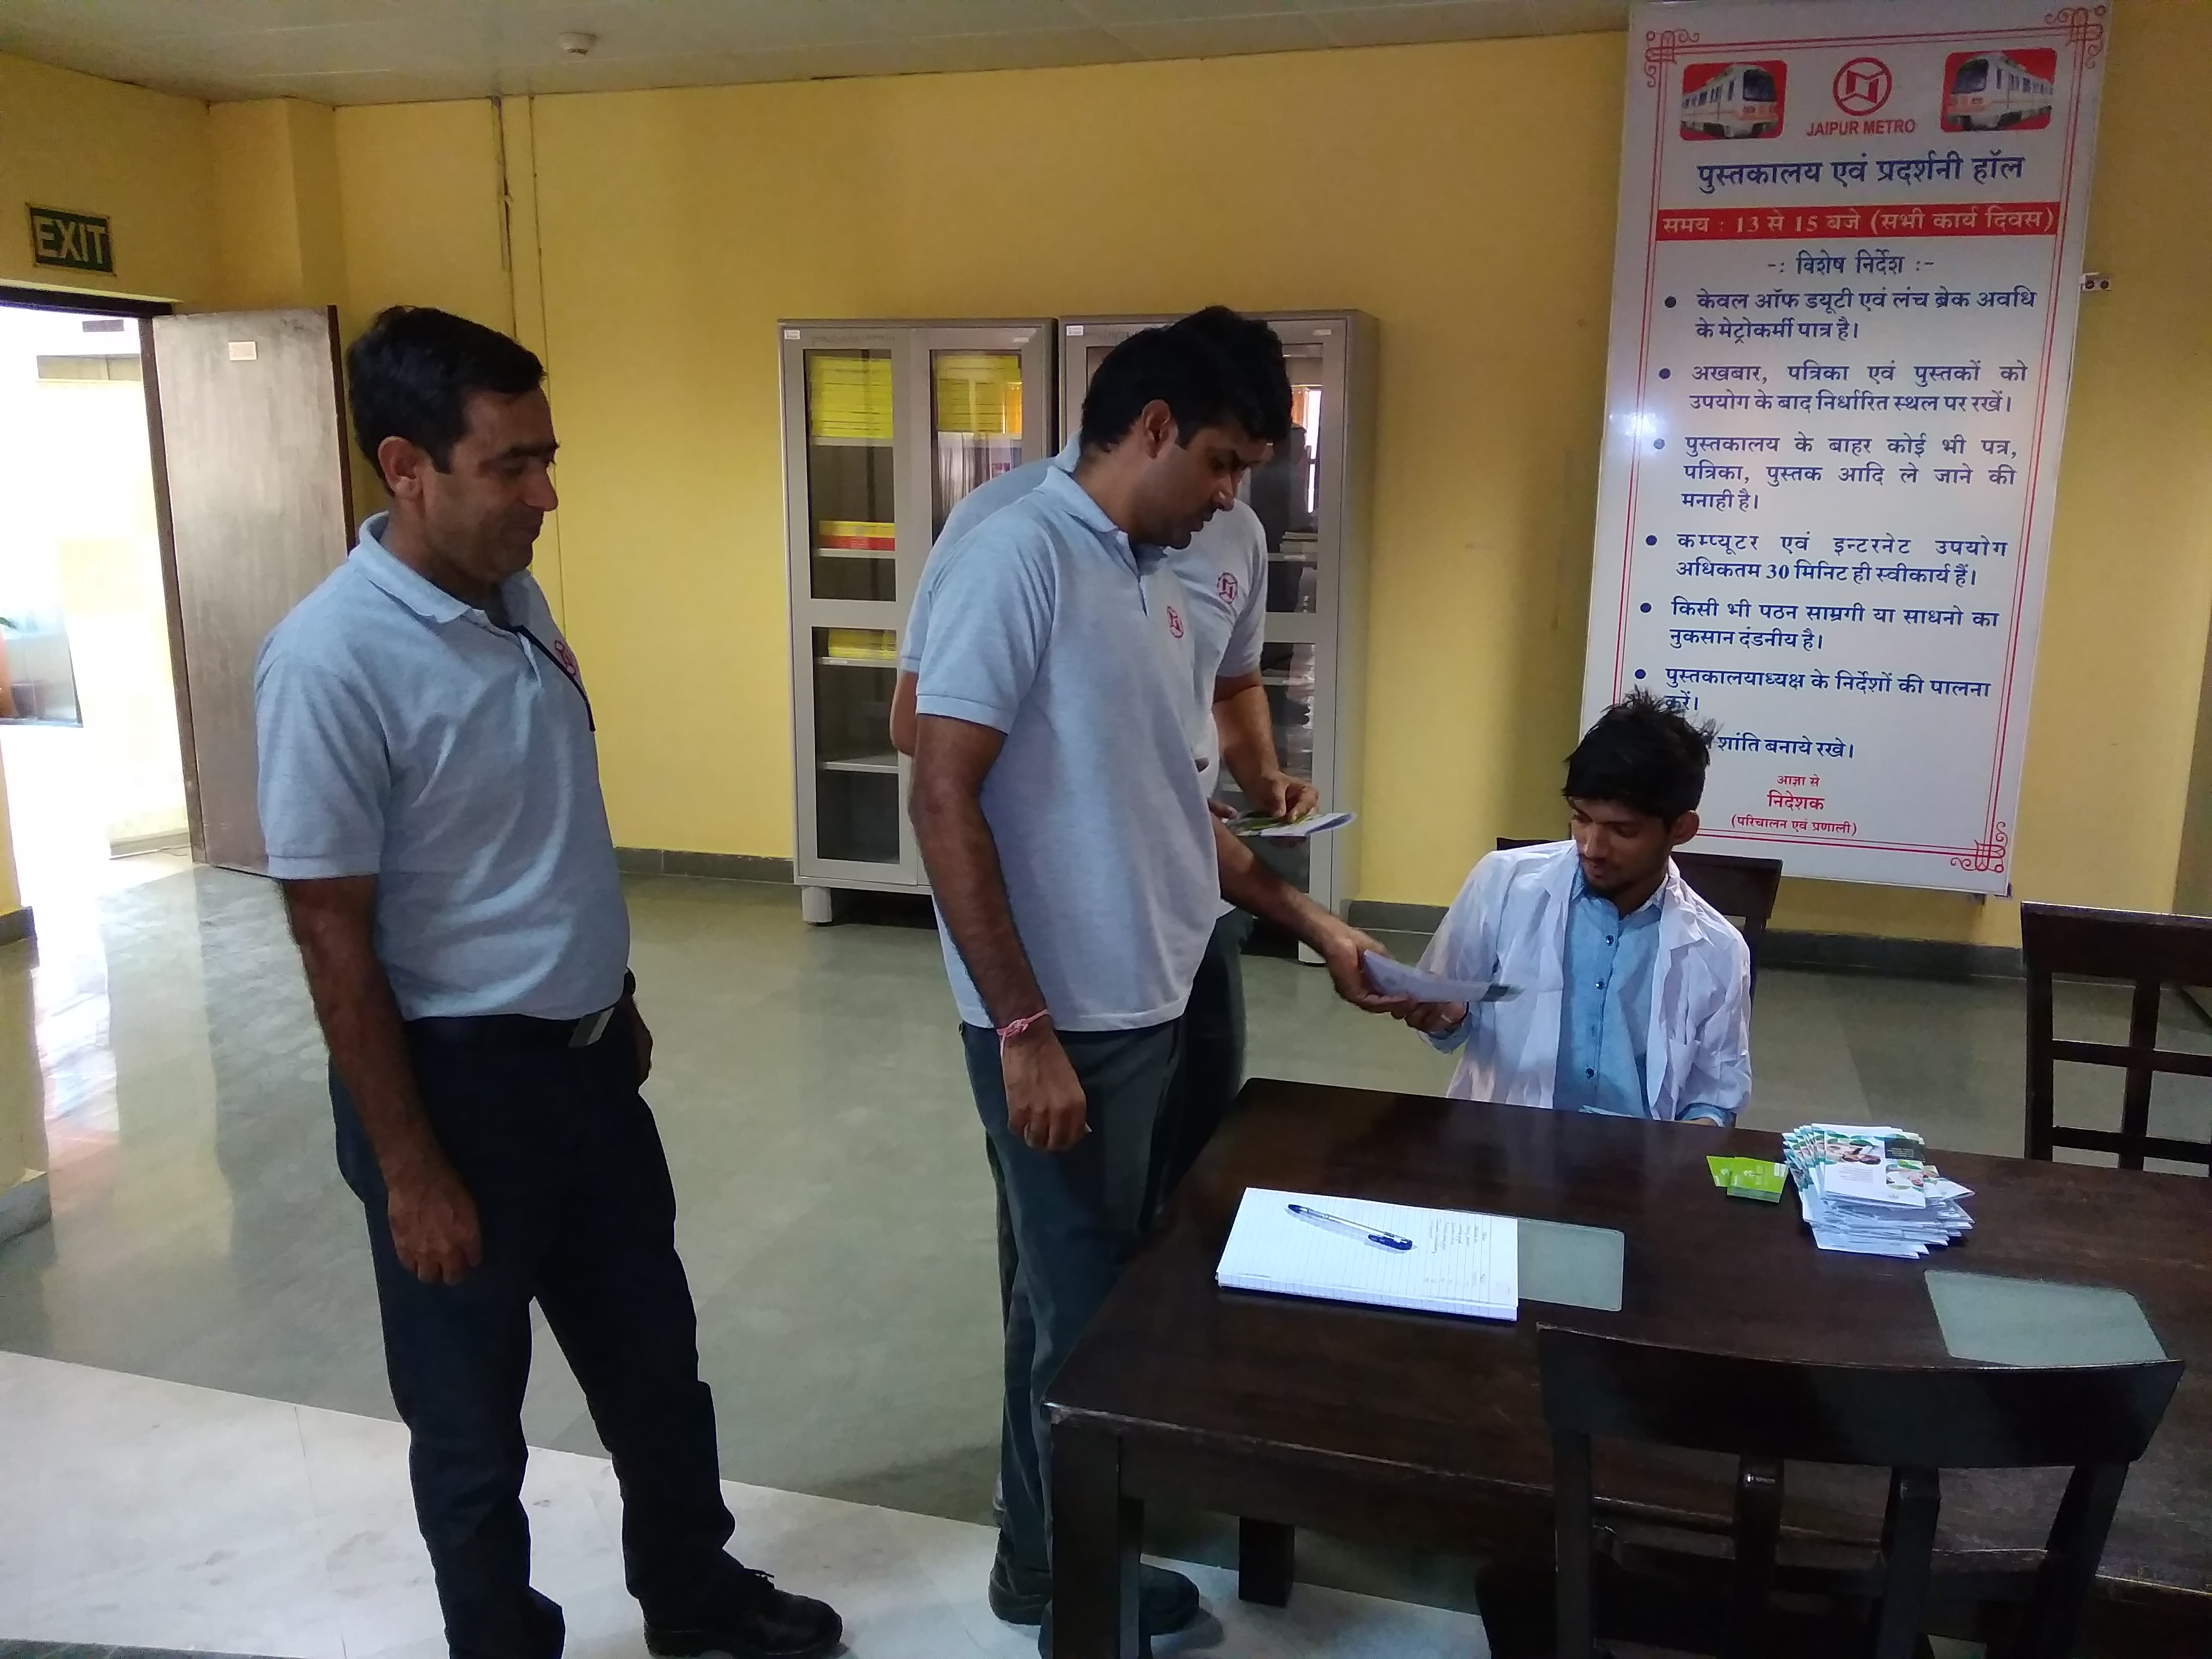 Health Awareness Camp at jaipur metro office by rootcure